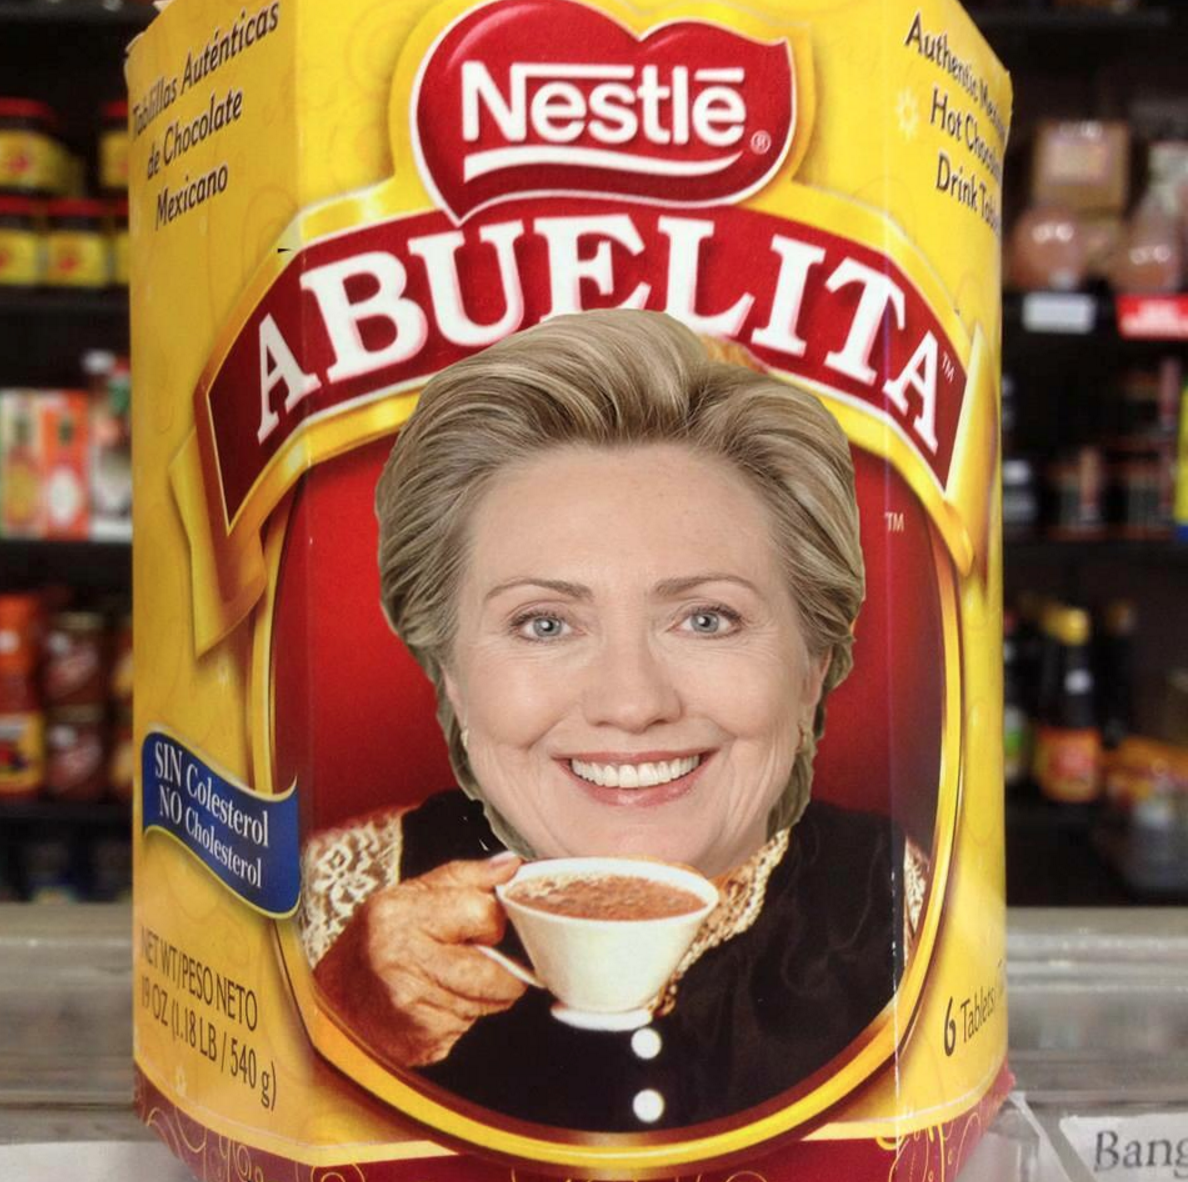 Hillary Clinton stands by abuela – Hispanics still hate her